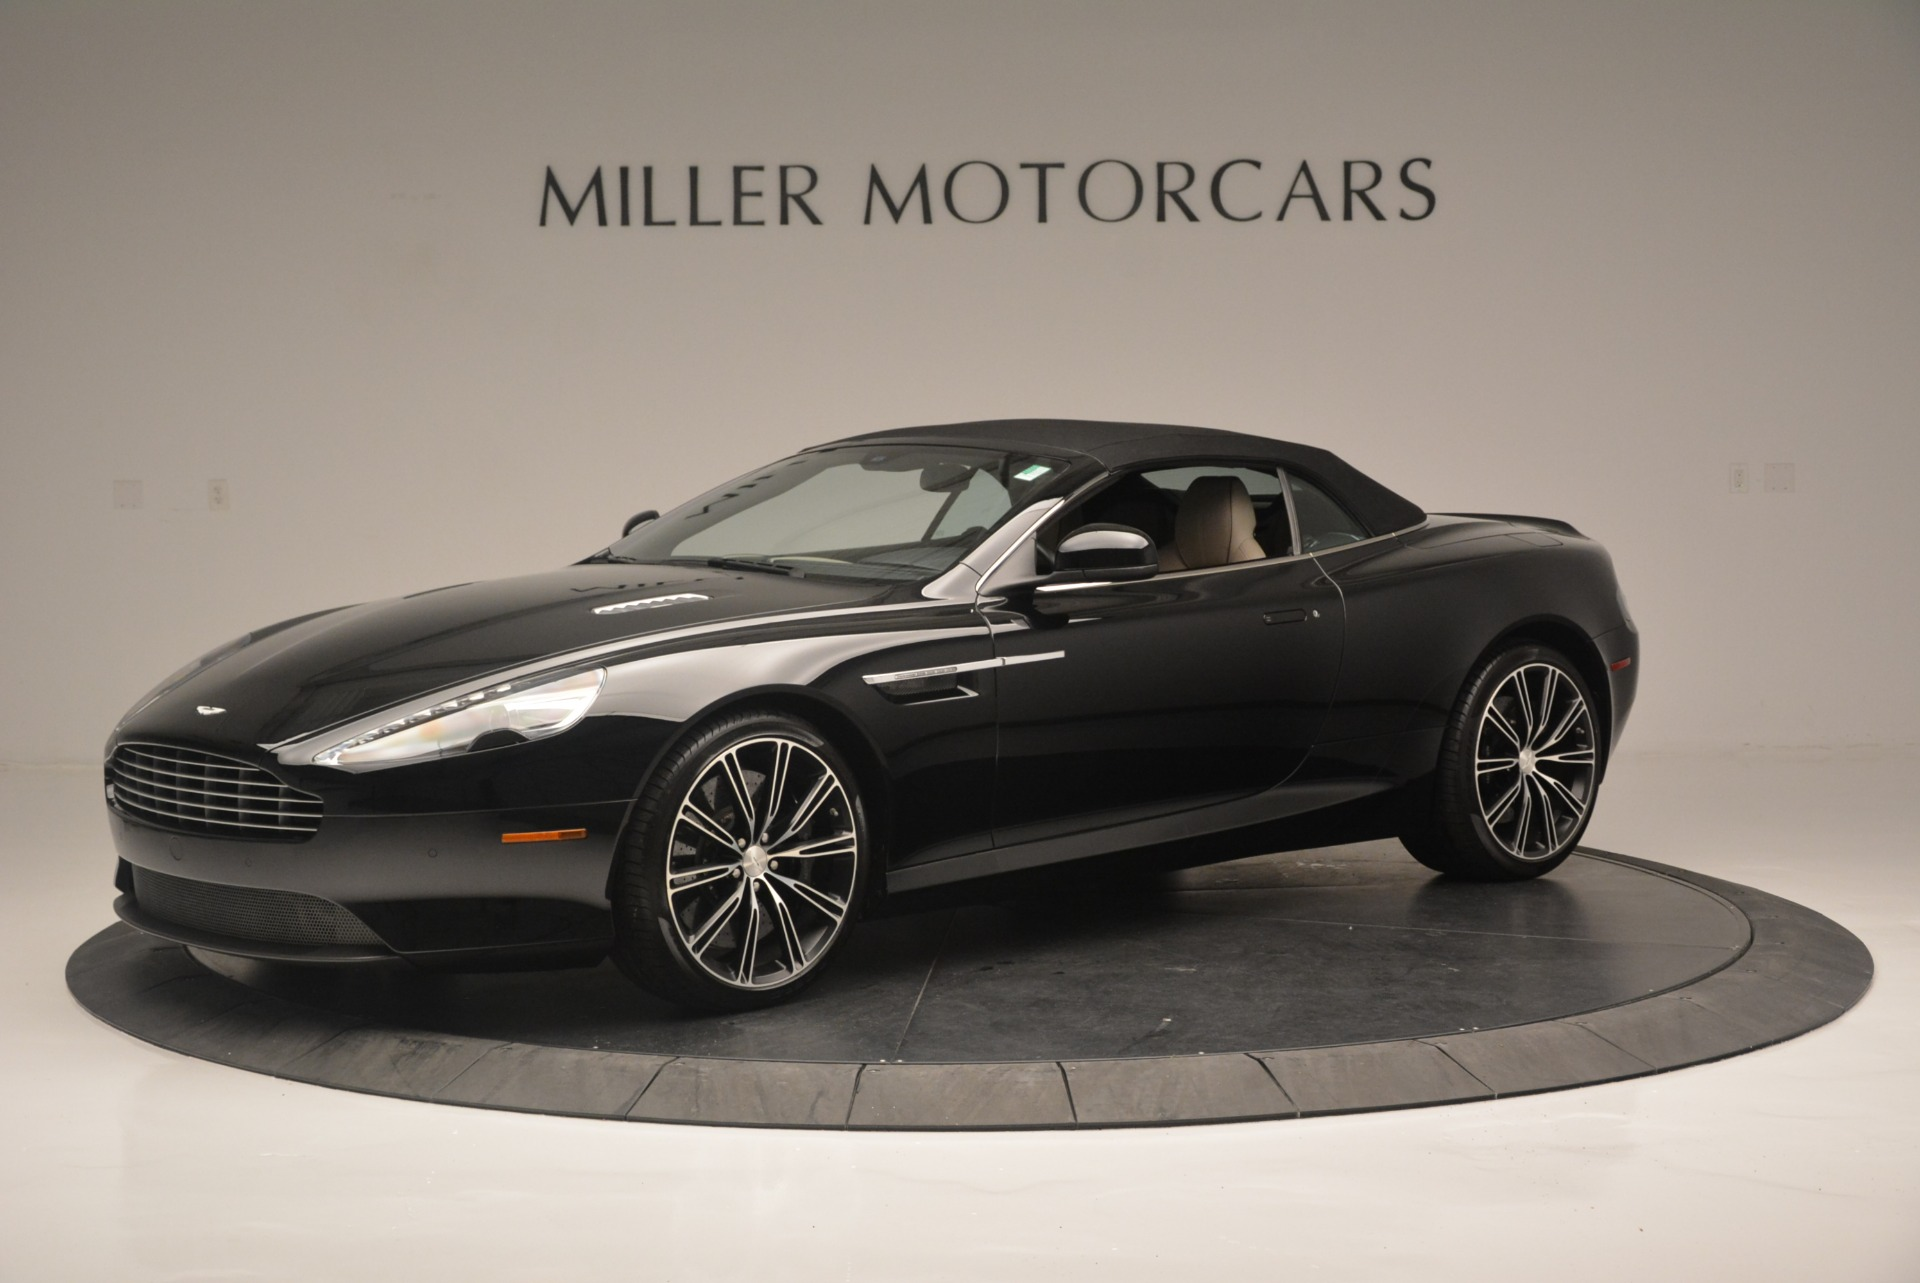 Used 2015 Aston Martin DB9 Volante For Sale In Westport, CT 2318_p14